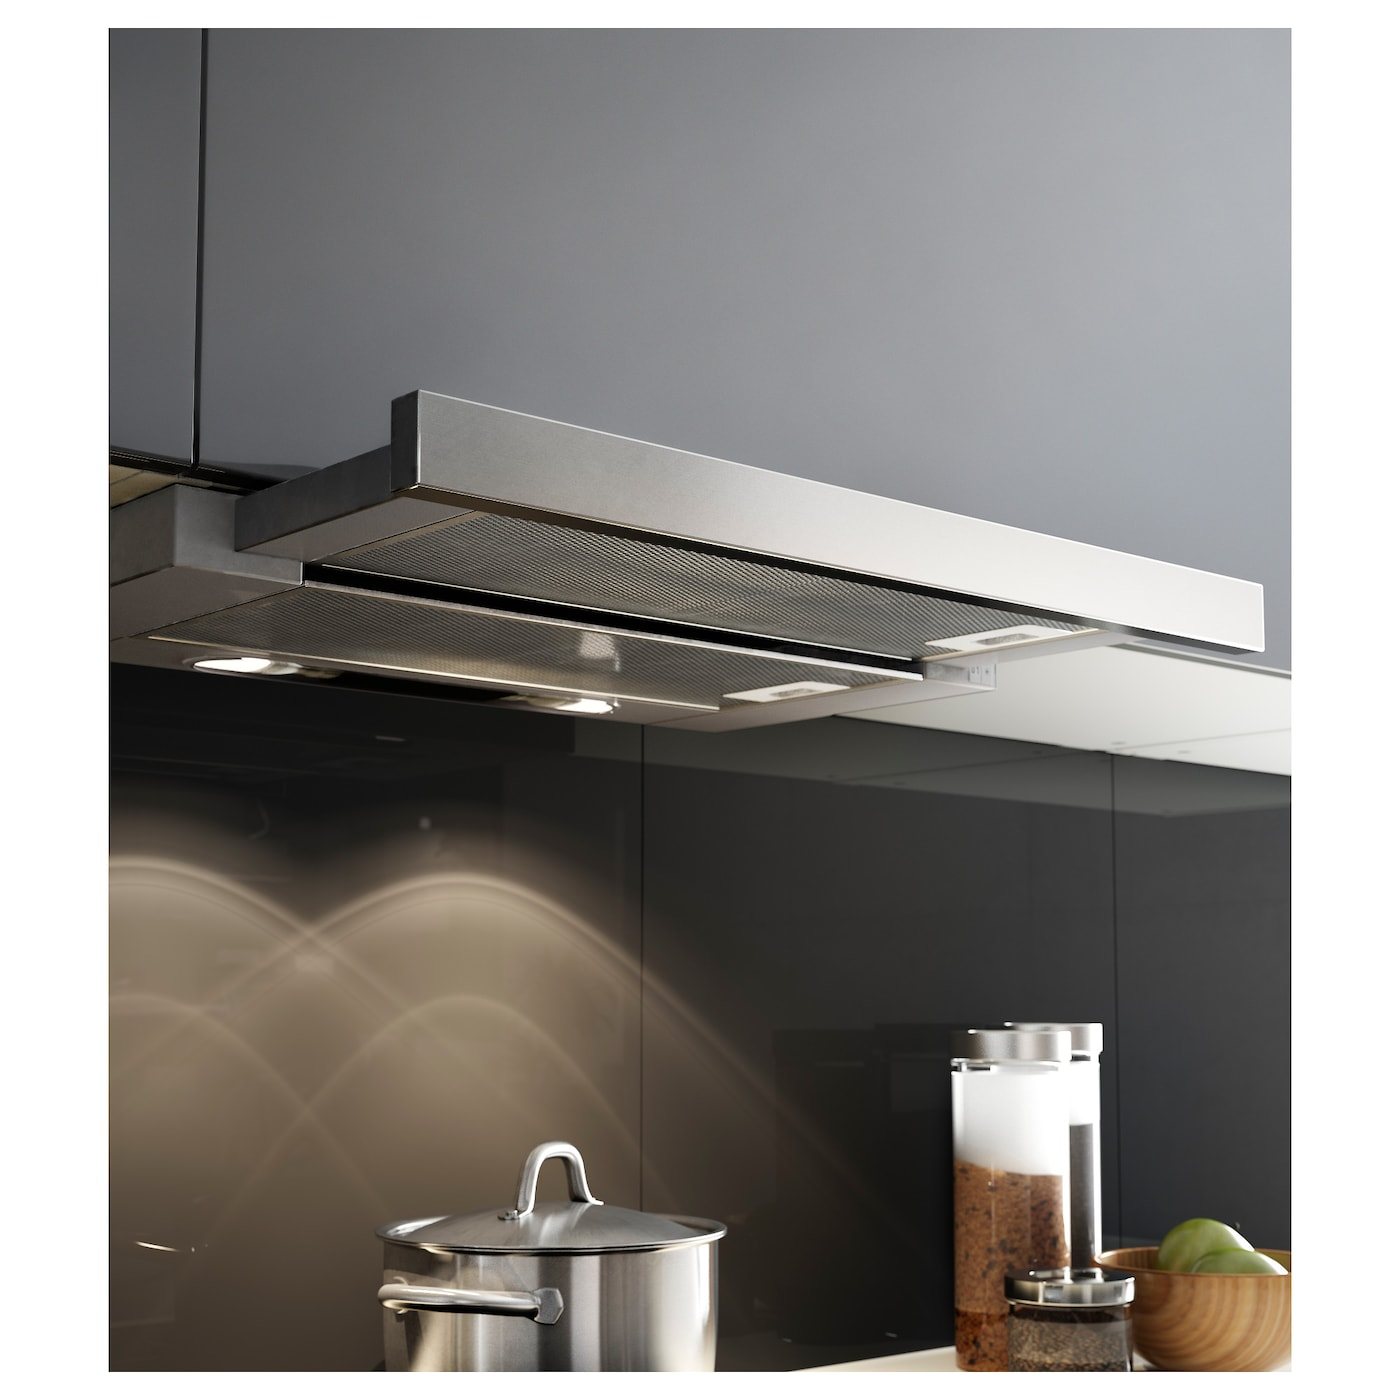 IKEA UTDRAG built-in extractor hood Pulls out to provide a larger exhaust area.